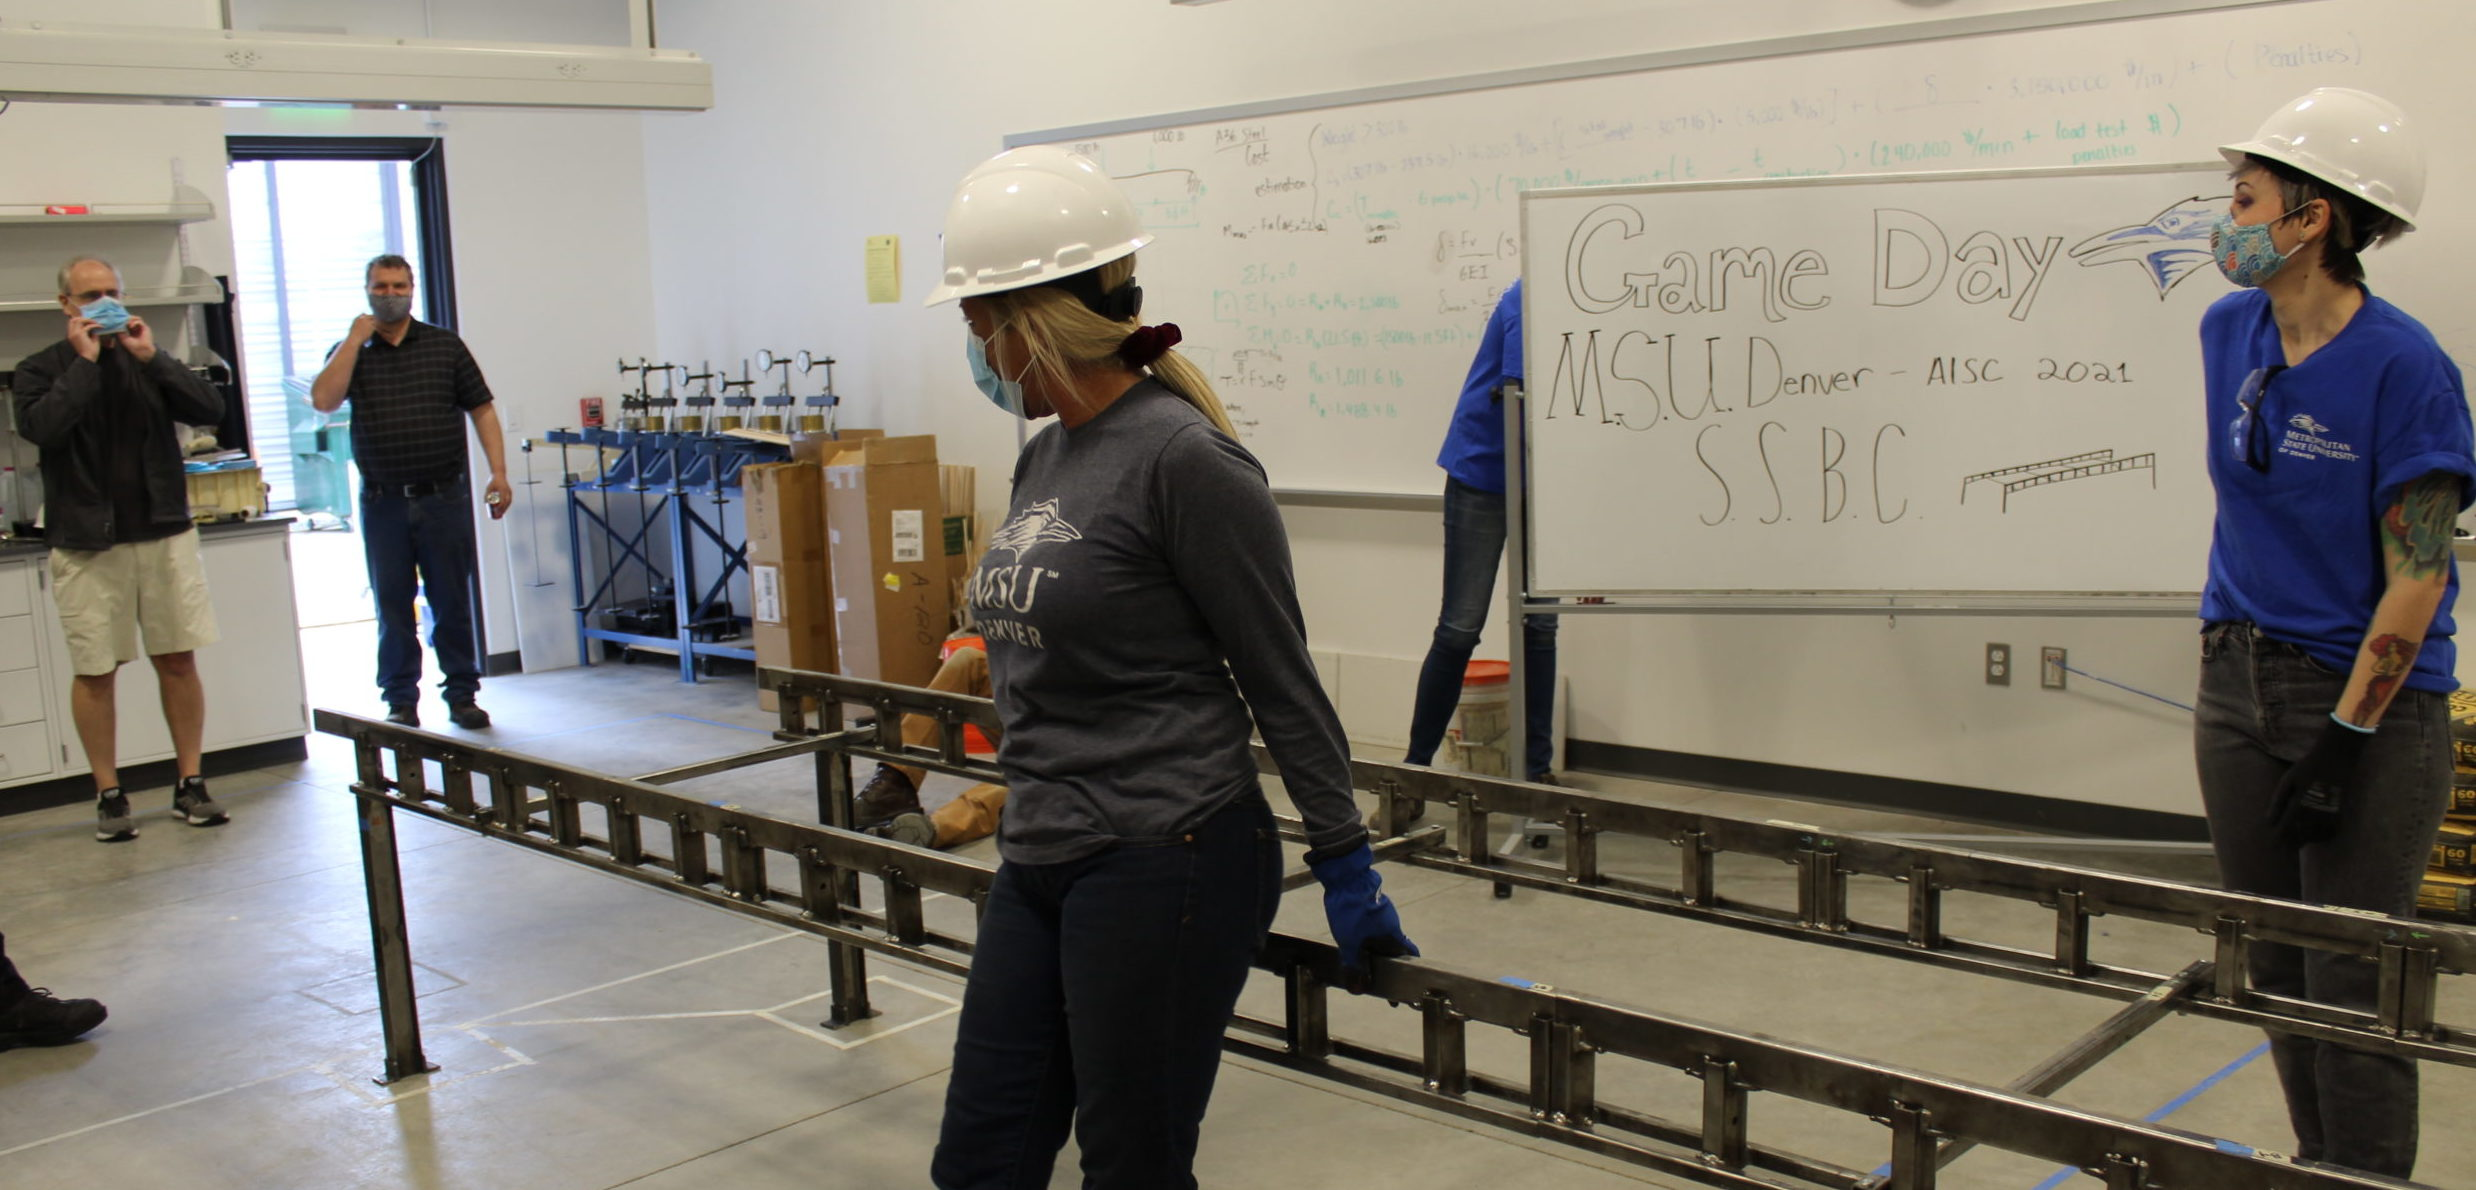 Students in MSU Denver clothing wearing hardhats at Game Day